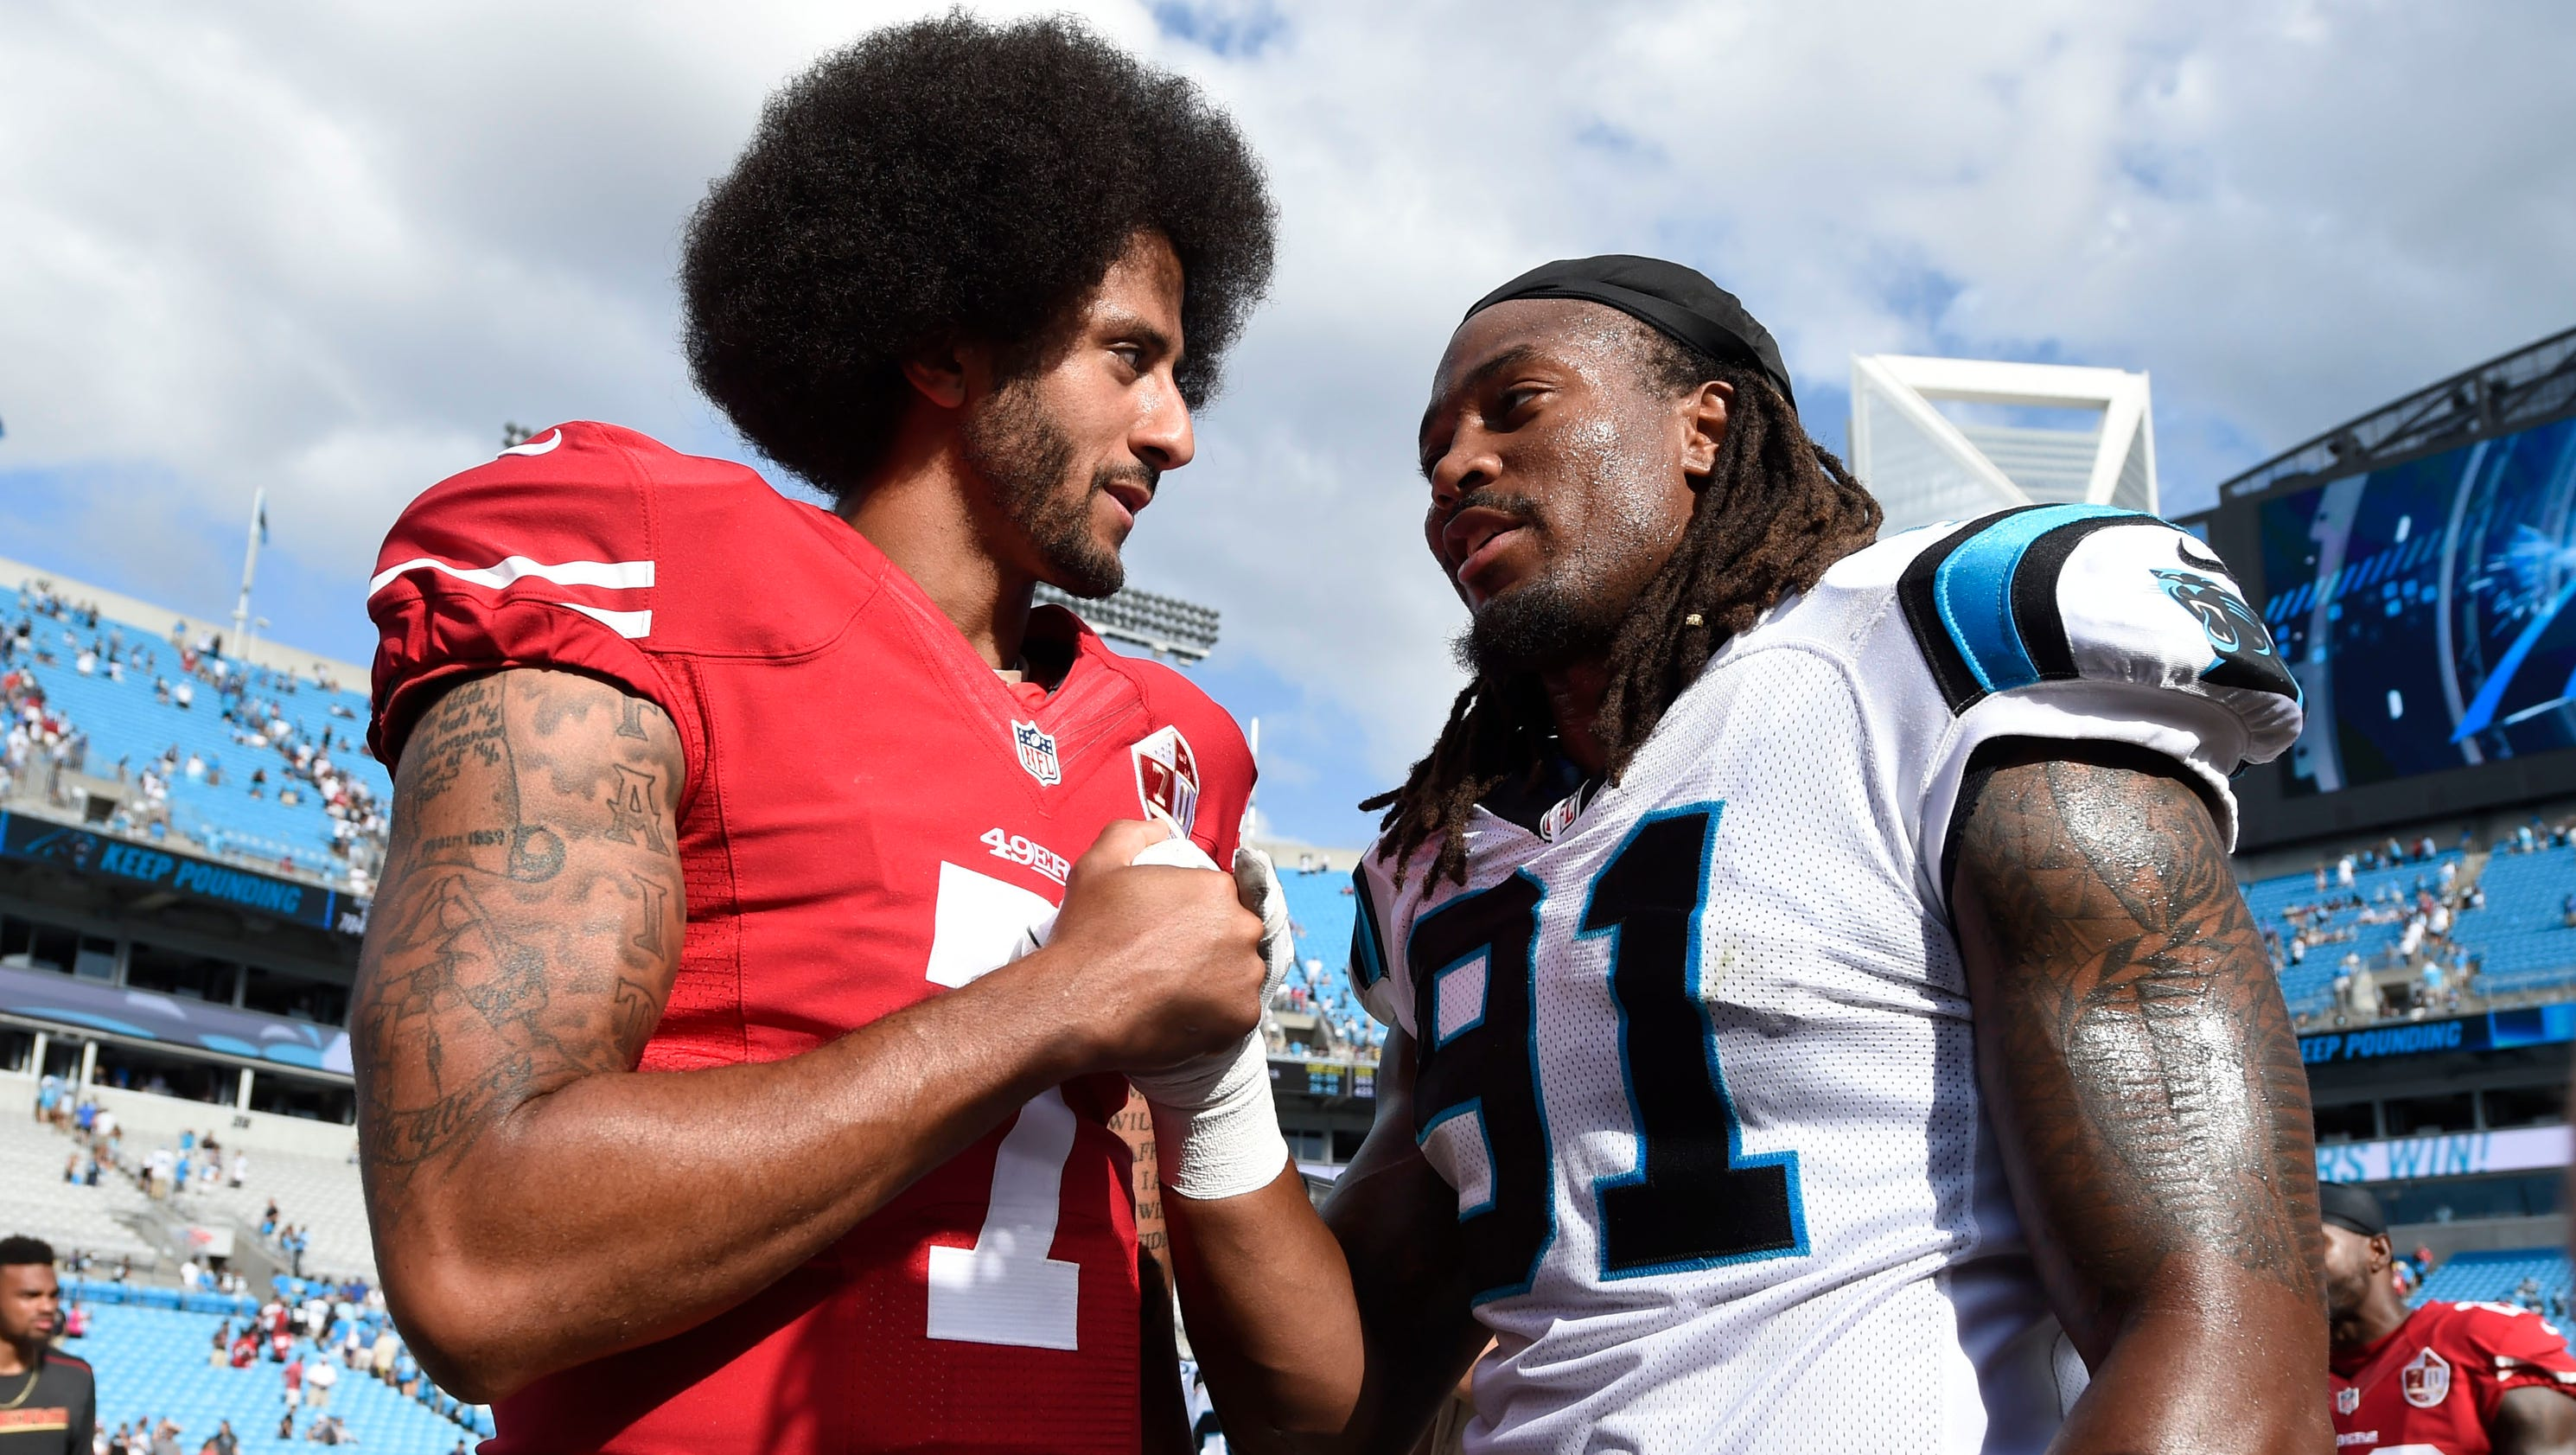 636101576570682453-usp-nfl-san-francisco-49ers-at-carolina-panthers-85330330